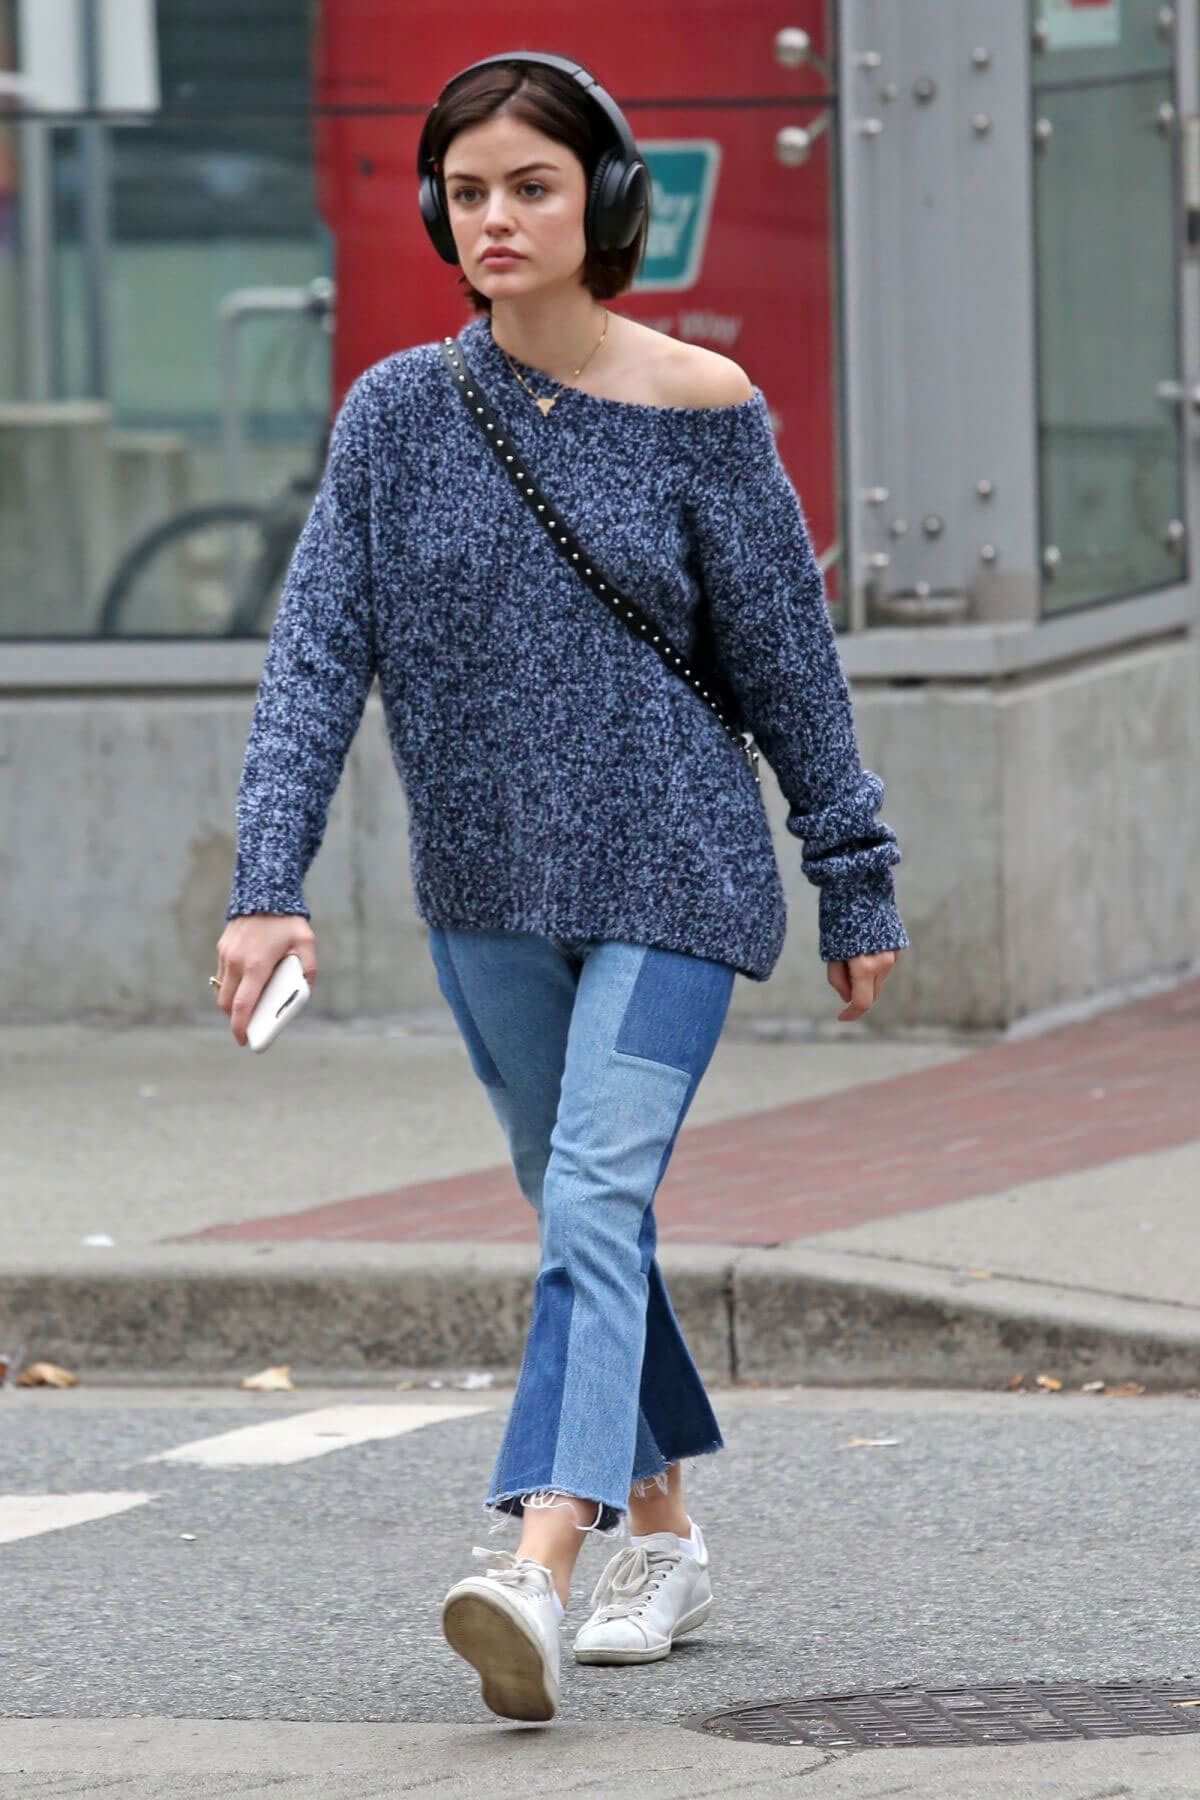 Lucy Hale Stills Out and About in Vancouver